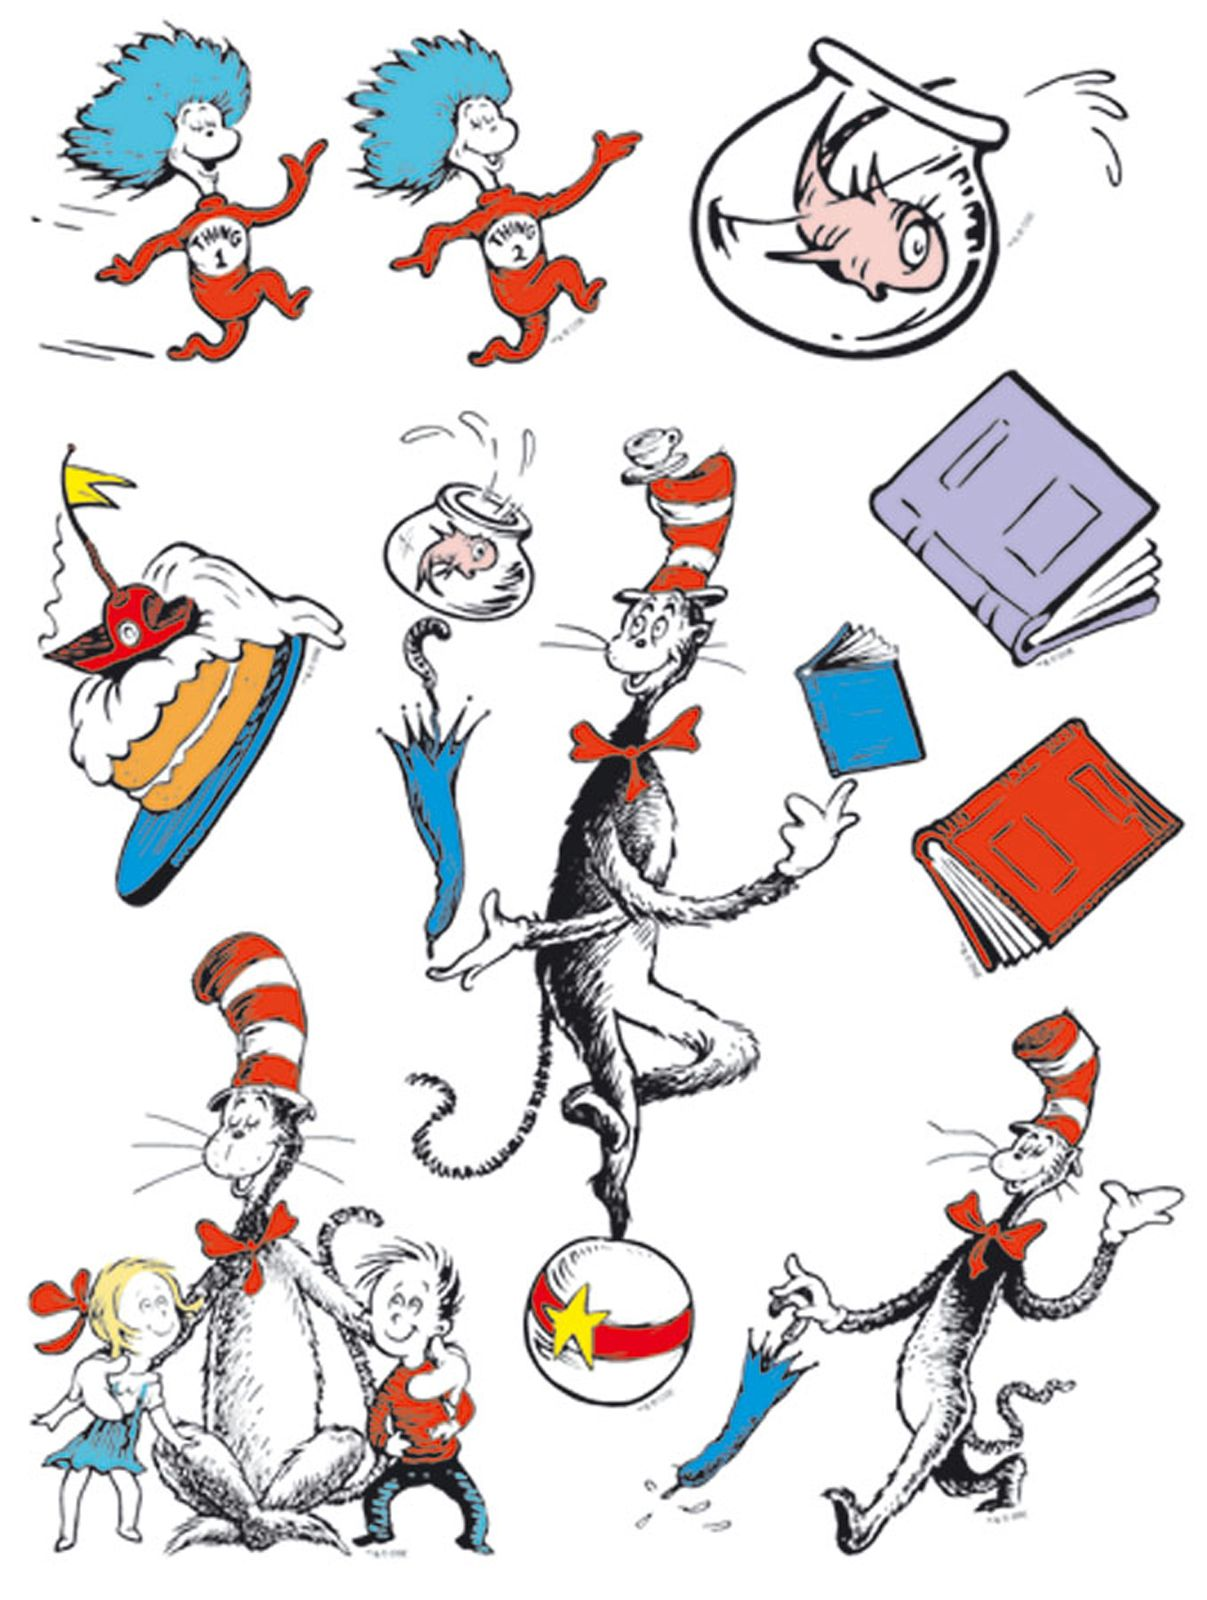 Cat In The Hat Clip Art Images Illustrations Photos Dr Seuss Classroom Seuss Classroom Cat In The Hat Party